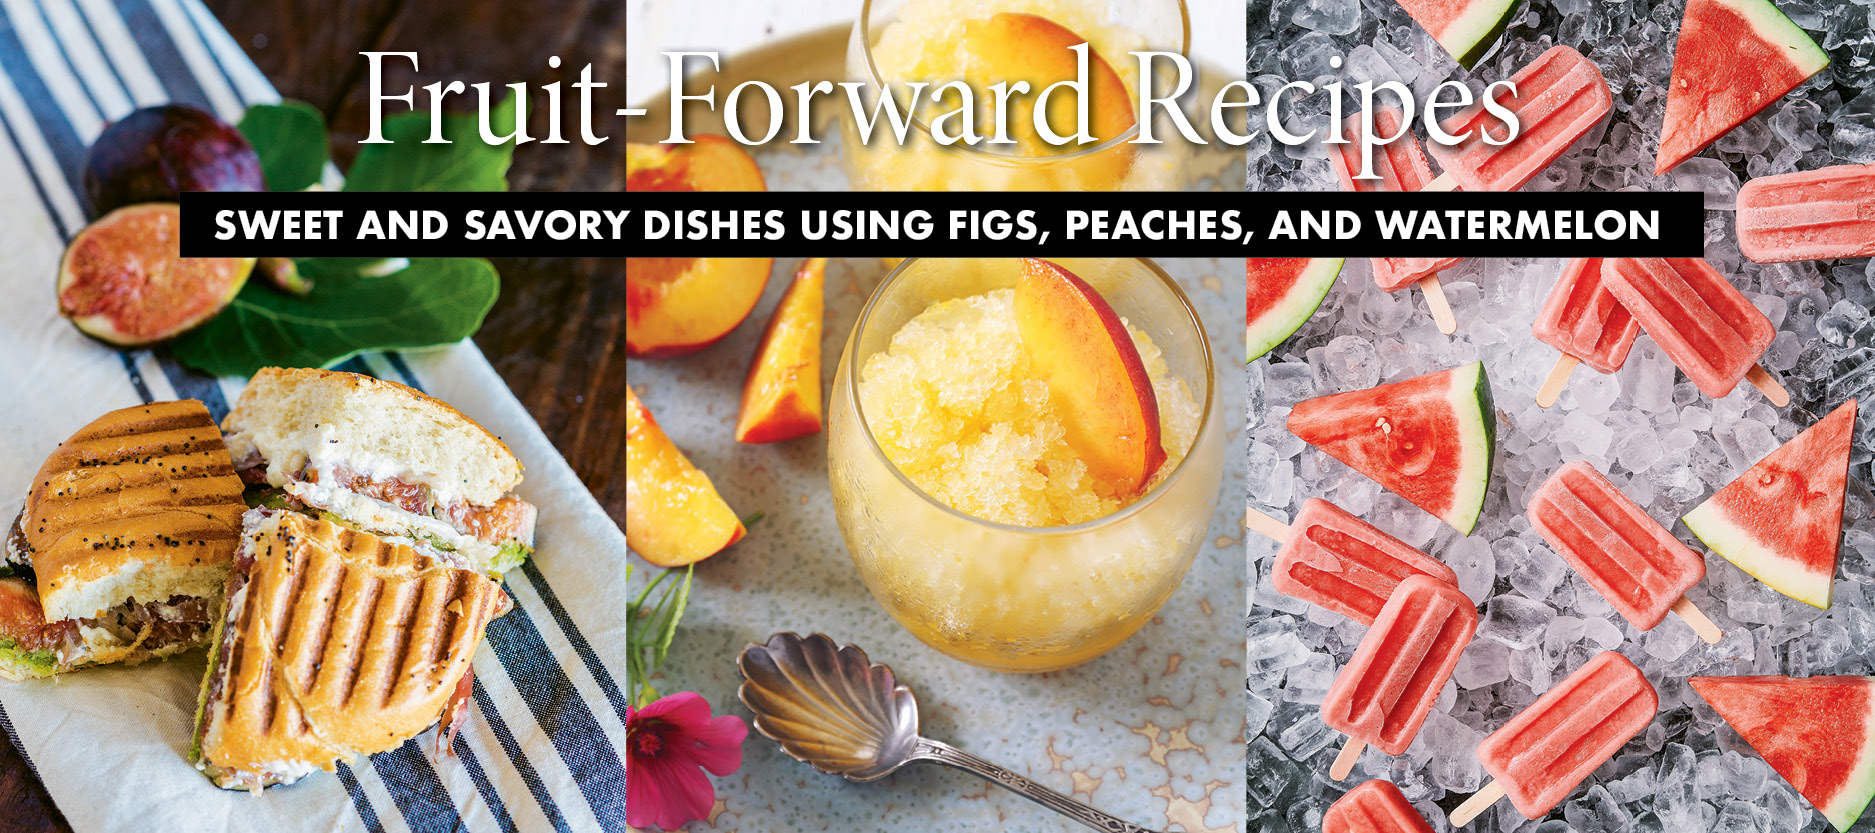 In the Kitchen - Fruit Forward Recipes